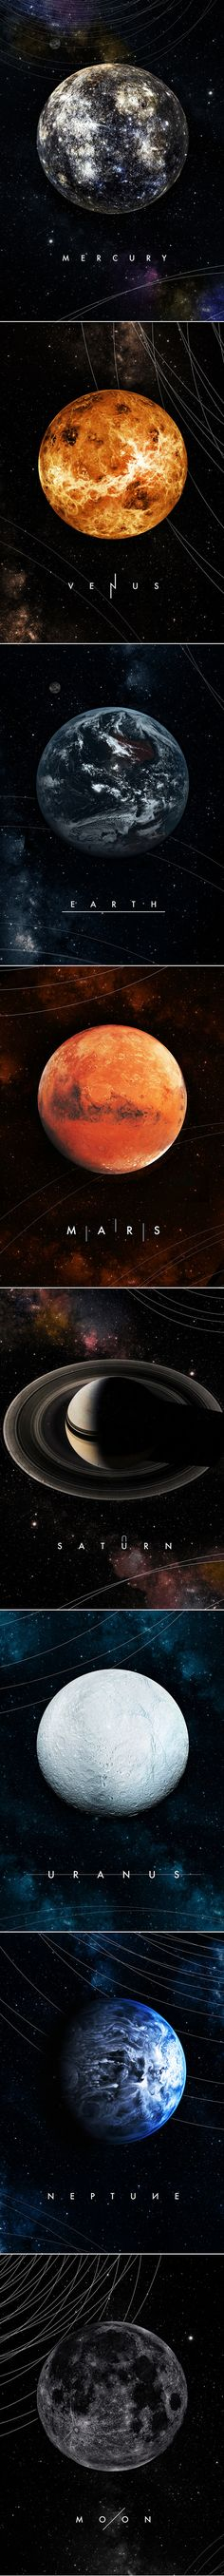 the solar system Cosmos, Space Planets, Space And Astronomy, Fosse Commune, 3d Prints, Space Travel, Space Exploration, Milky Way, Science And Nature